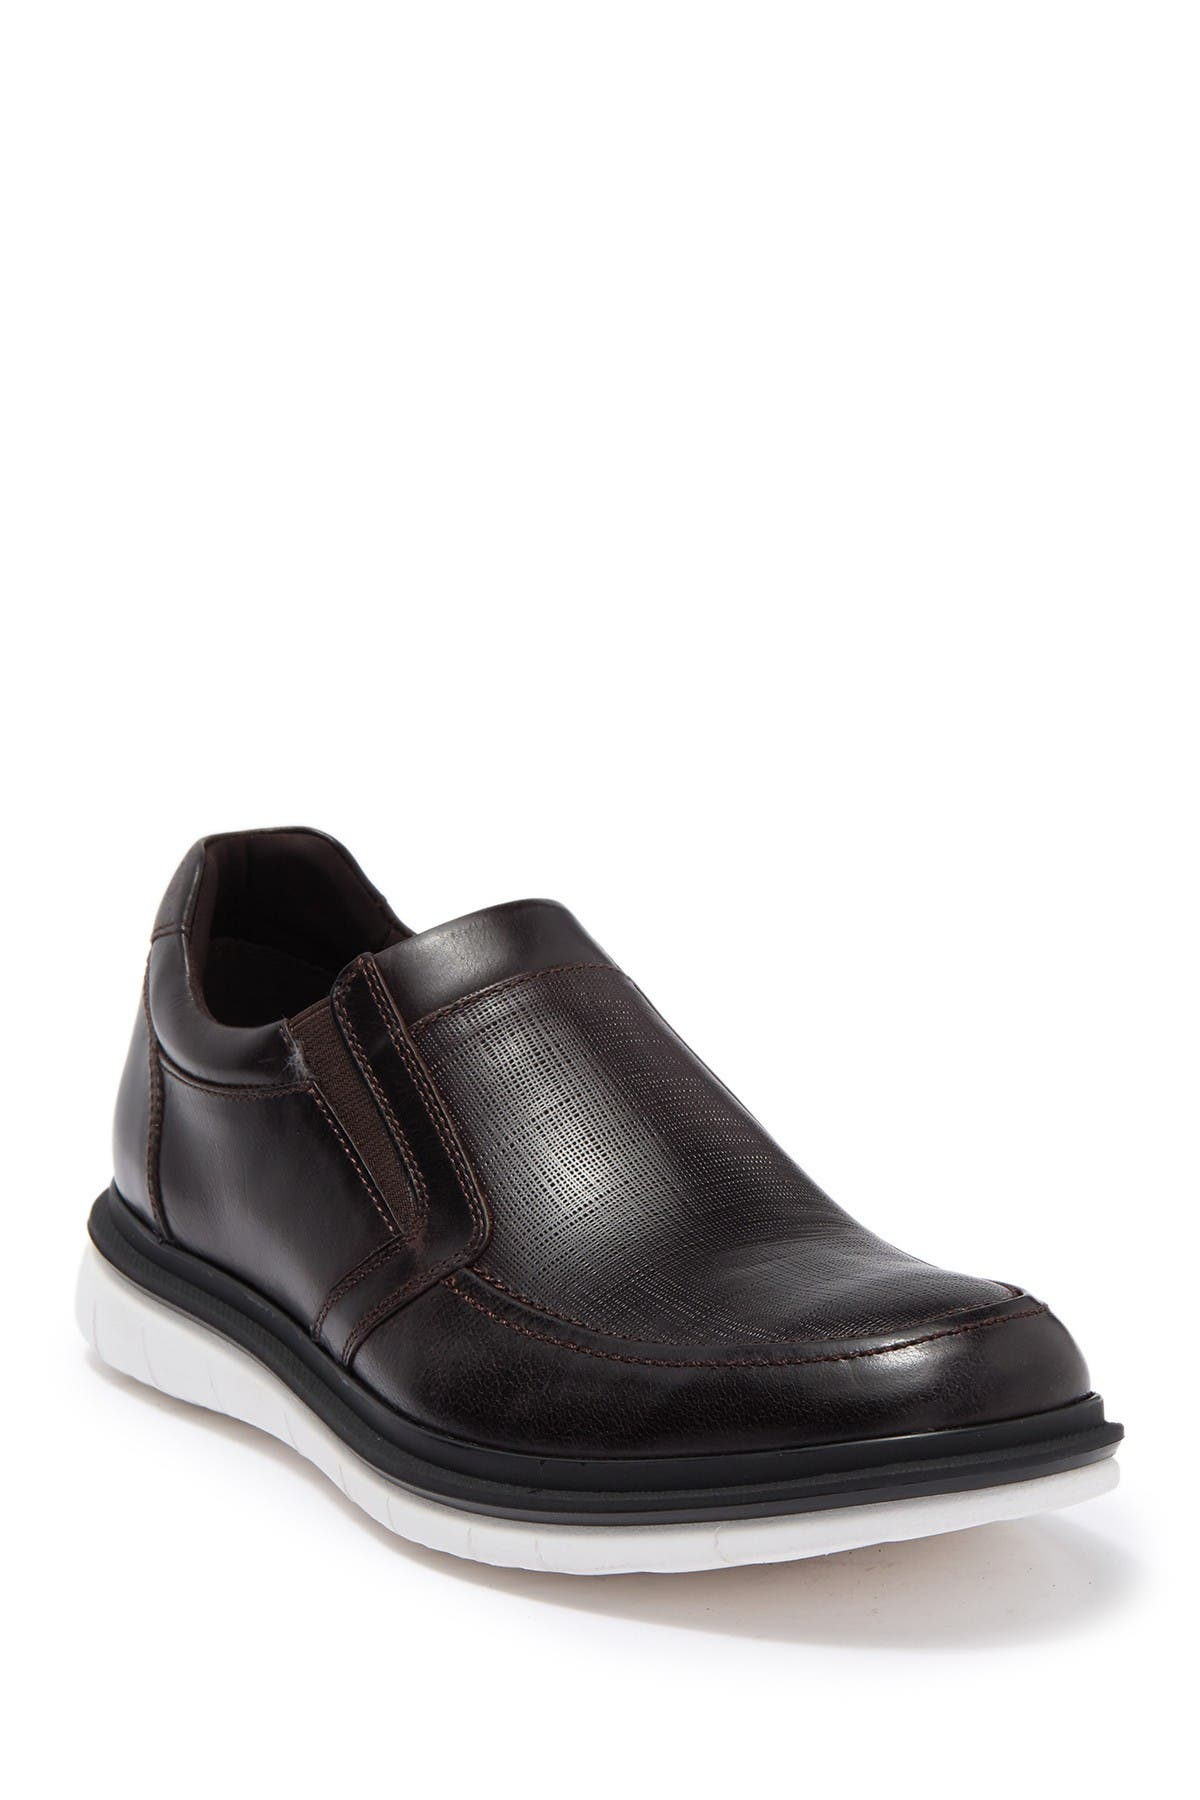 Image of Kenneth Cole Reaction Corey Flex Slip-On Shoe